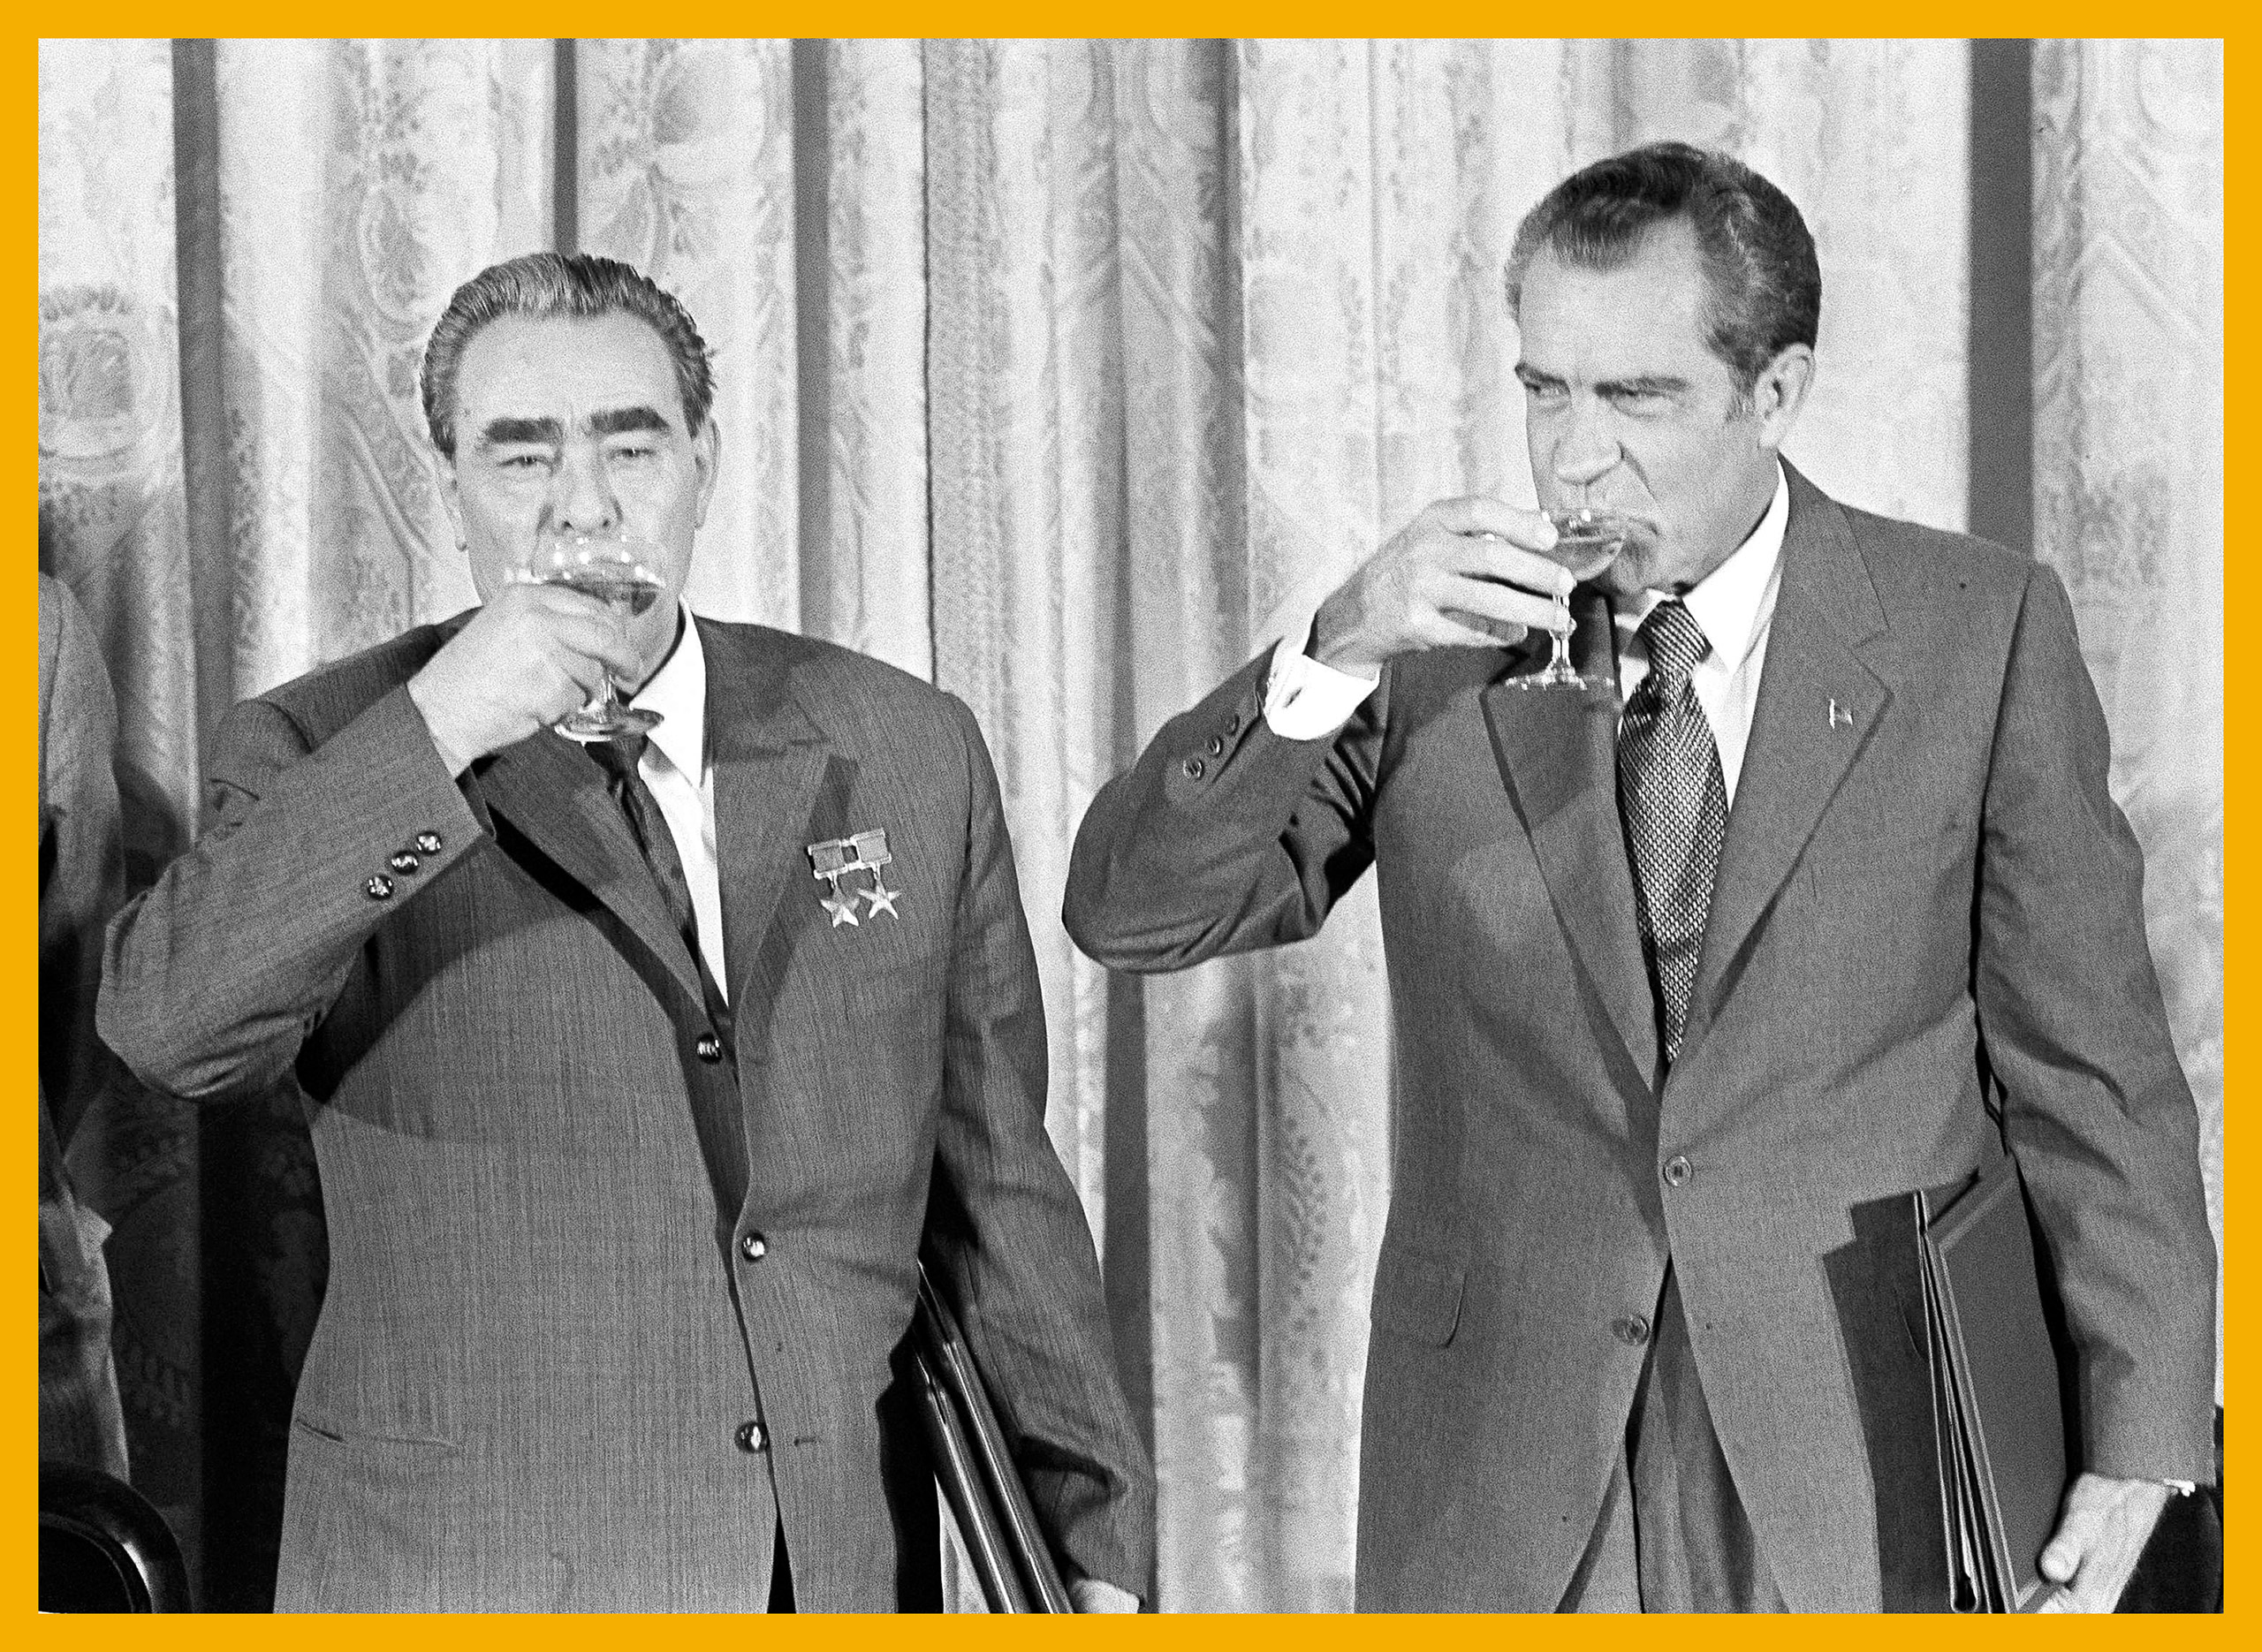 President Richard M. Nixon, right, and Soviet leader Leonid Brezhnev drink a toast at the White House in Washington, June 21, 1973. The toast comes after the two leaders signed a pact to limit offensive nuclear arsenals.